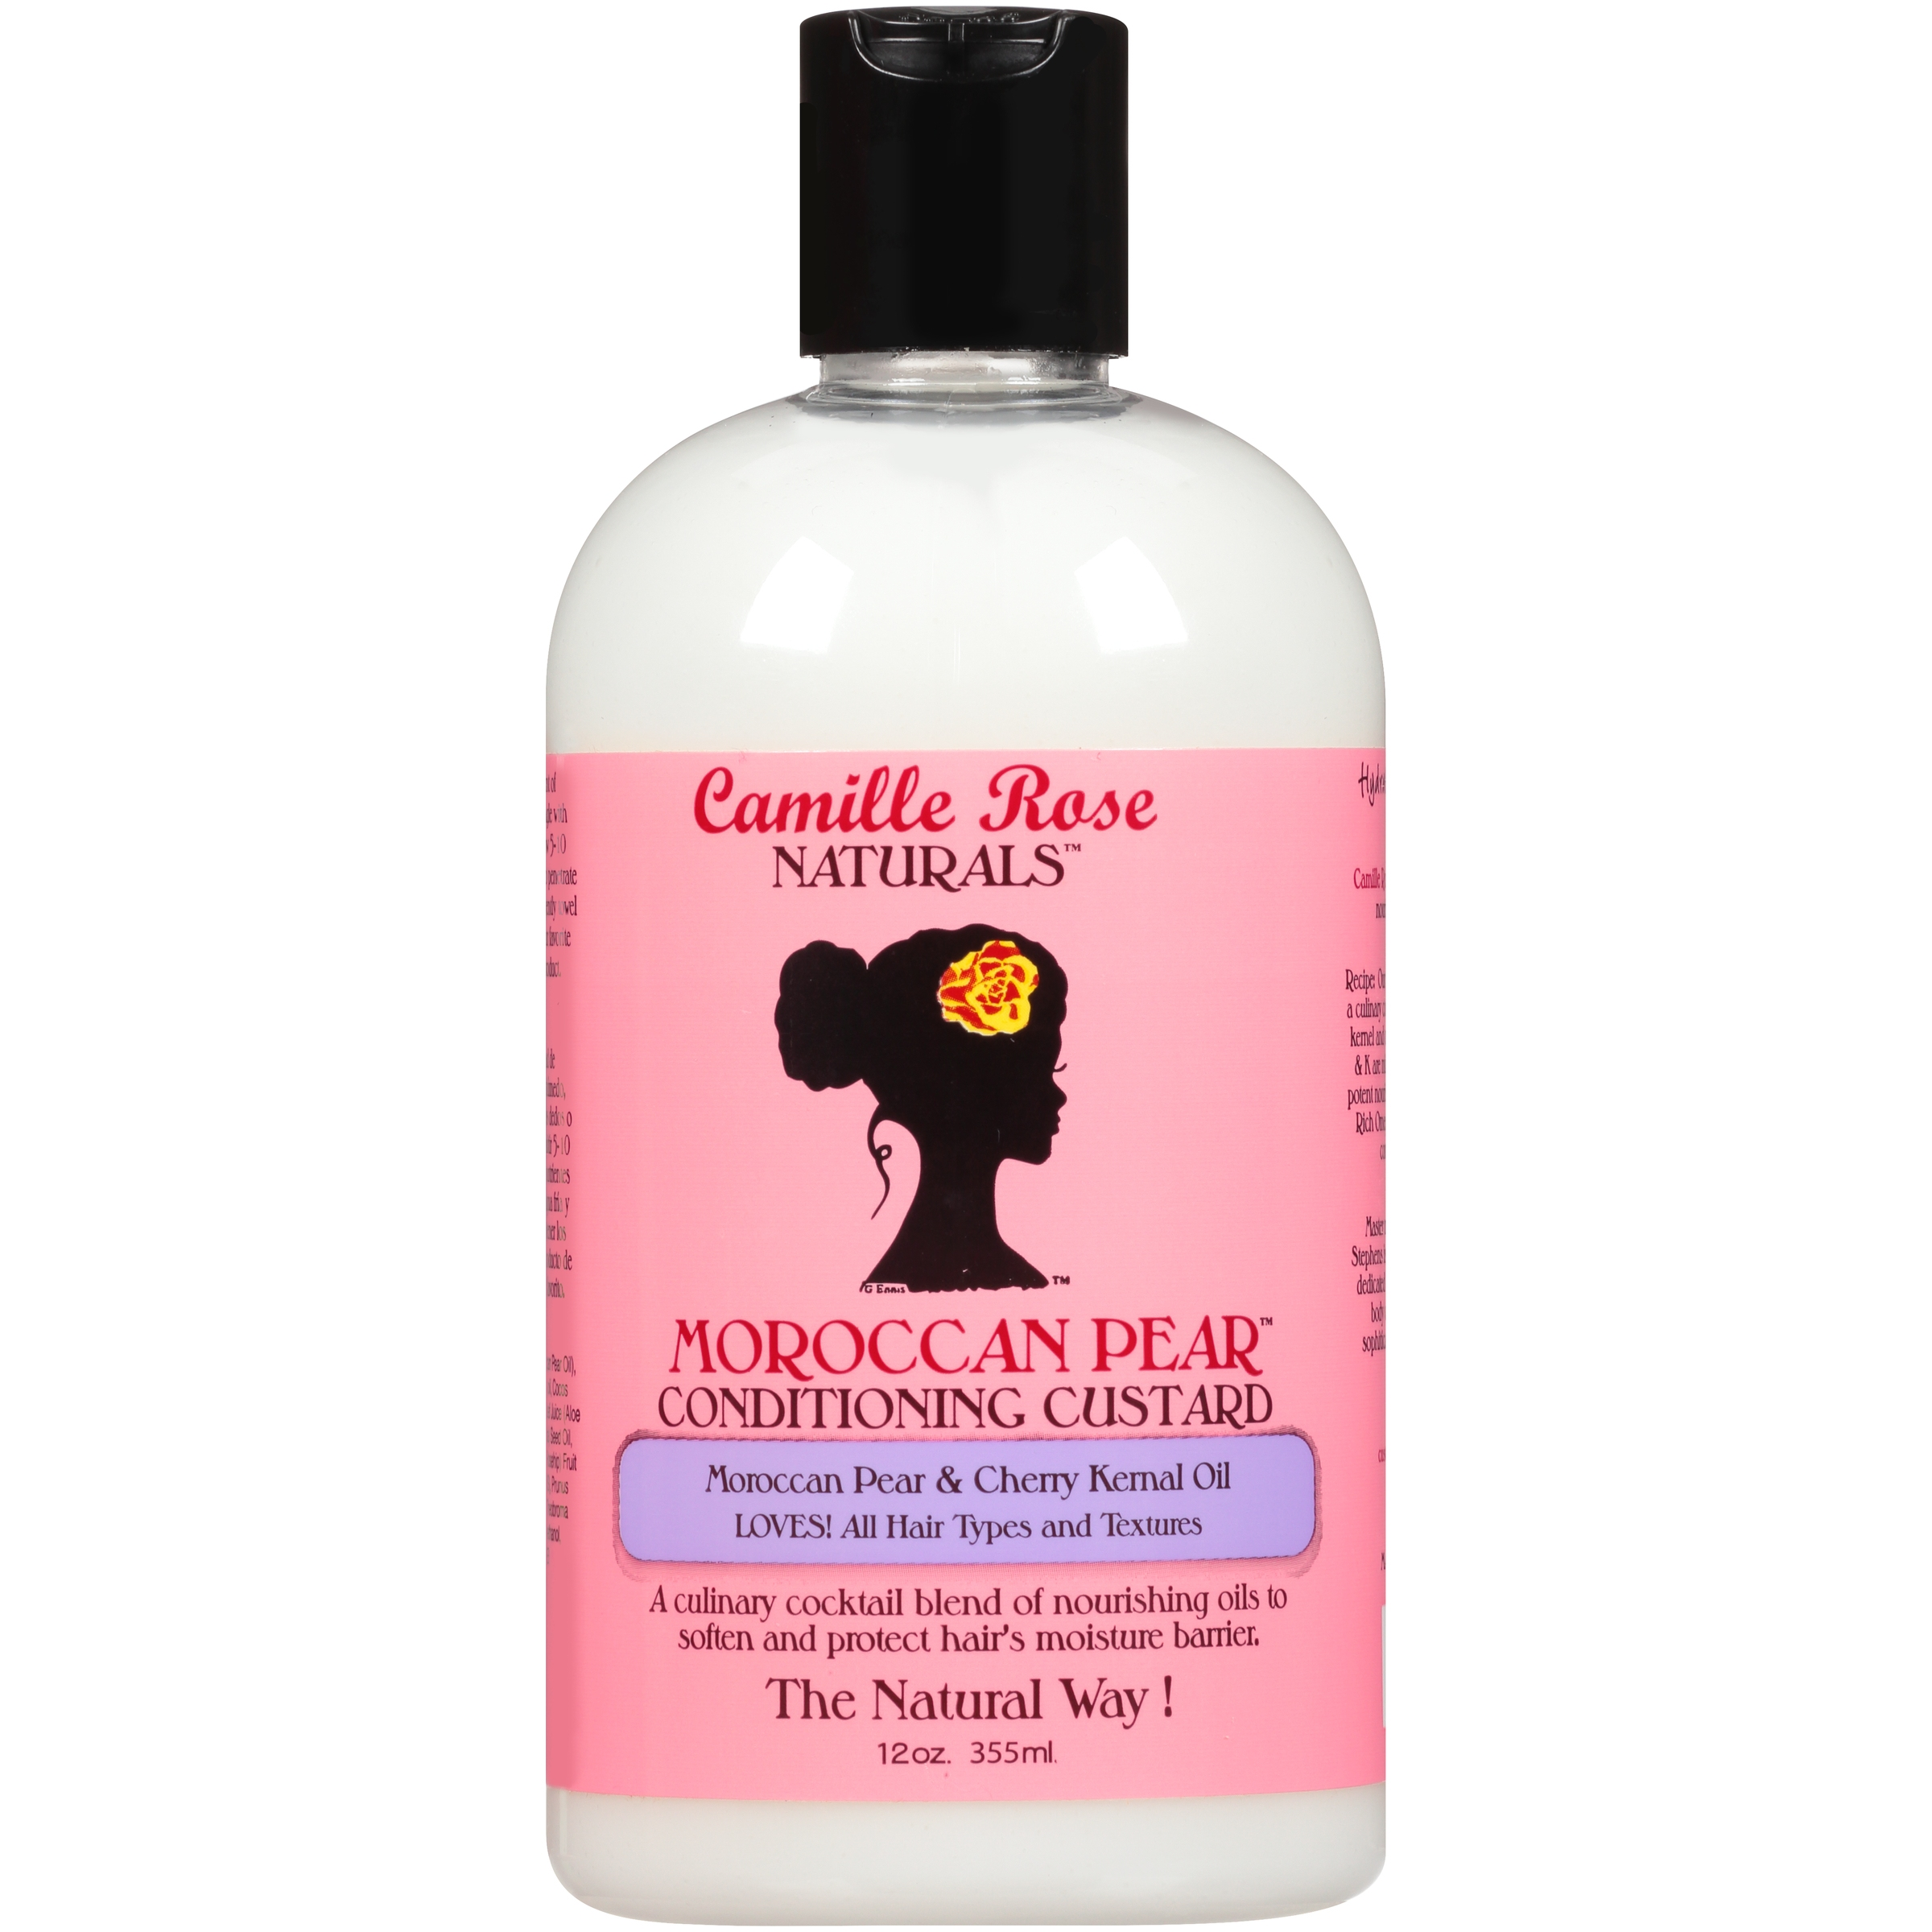 Camille Rose Naturals™ Moroccan Pear™ Conditioning Custard with Bonus Sweet Ginger Cleansing Rinse 12 oz. Bottle